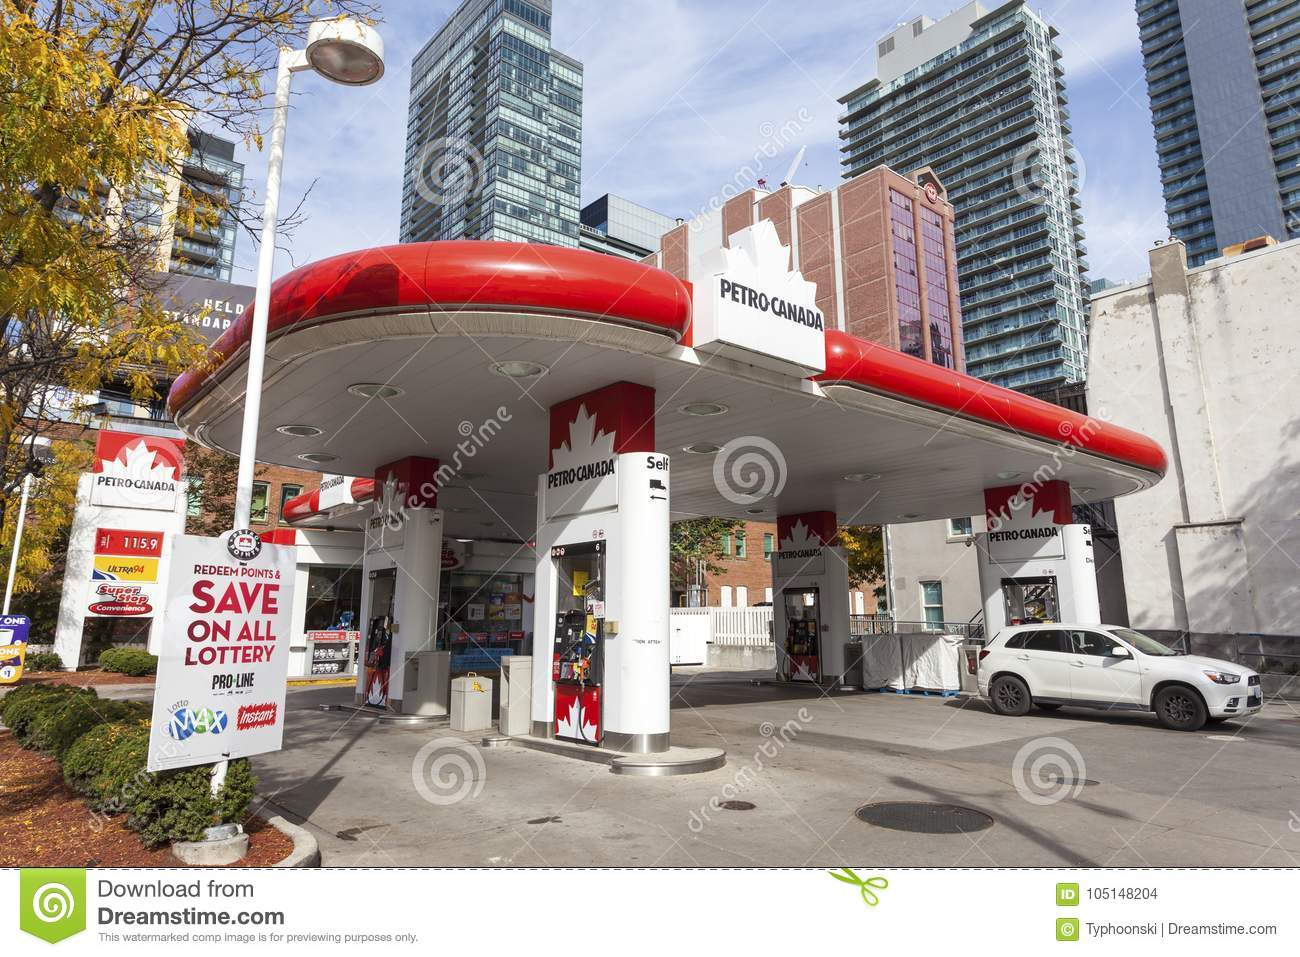 Petro Canada petrol station in Toronto